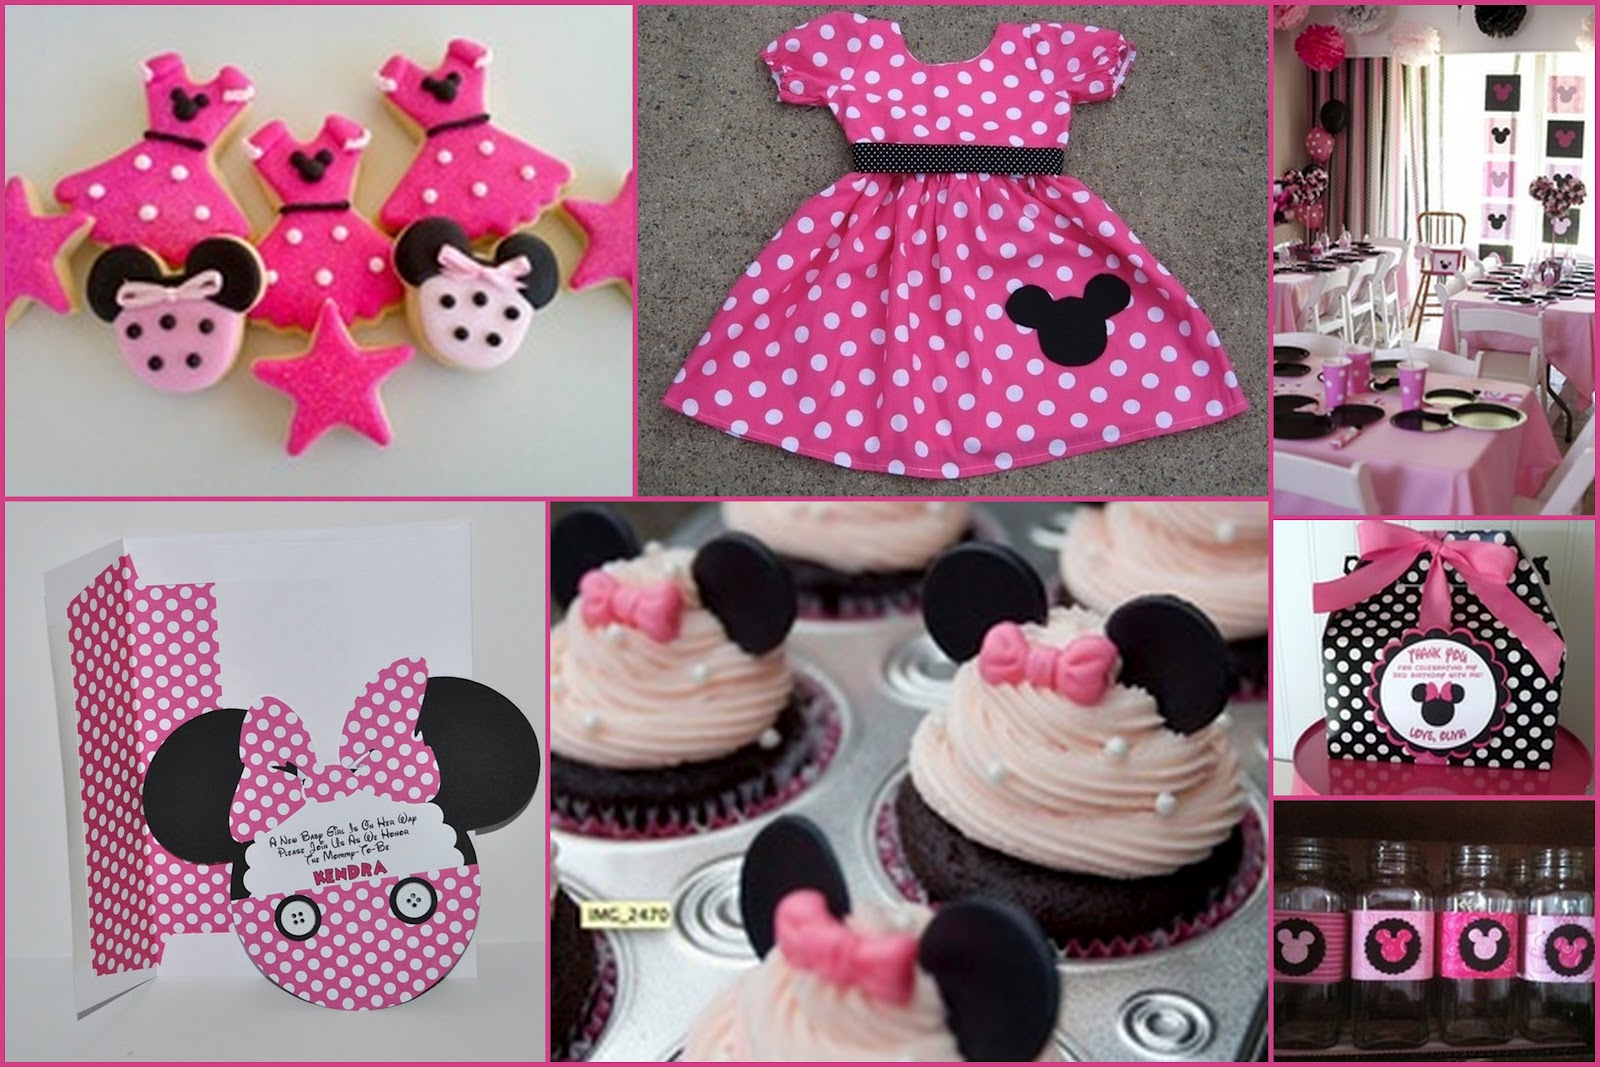 Minnie Mouse Diy Decorations For First Birthday Pinterest Image